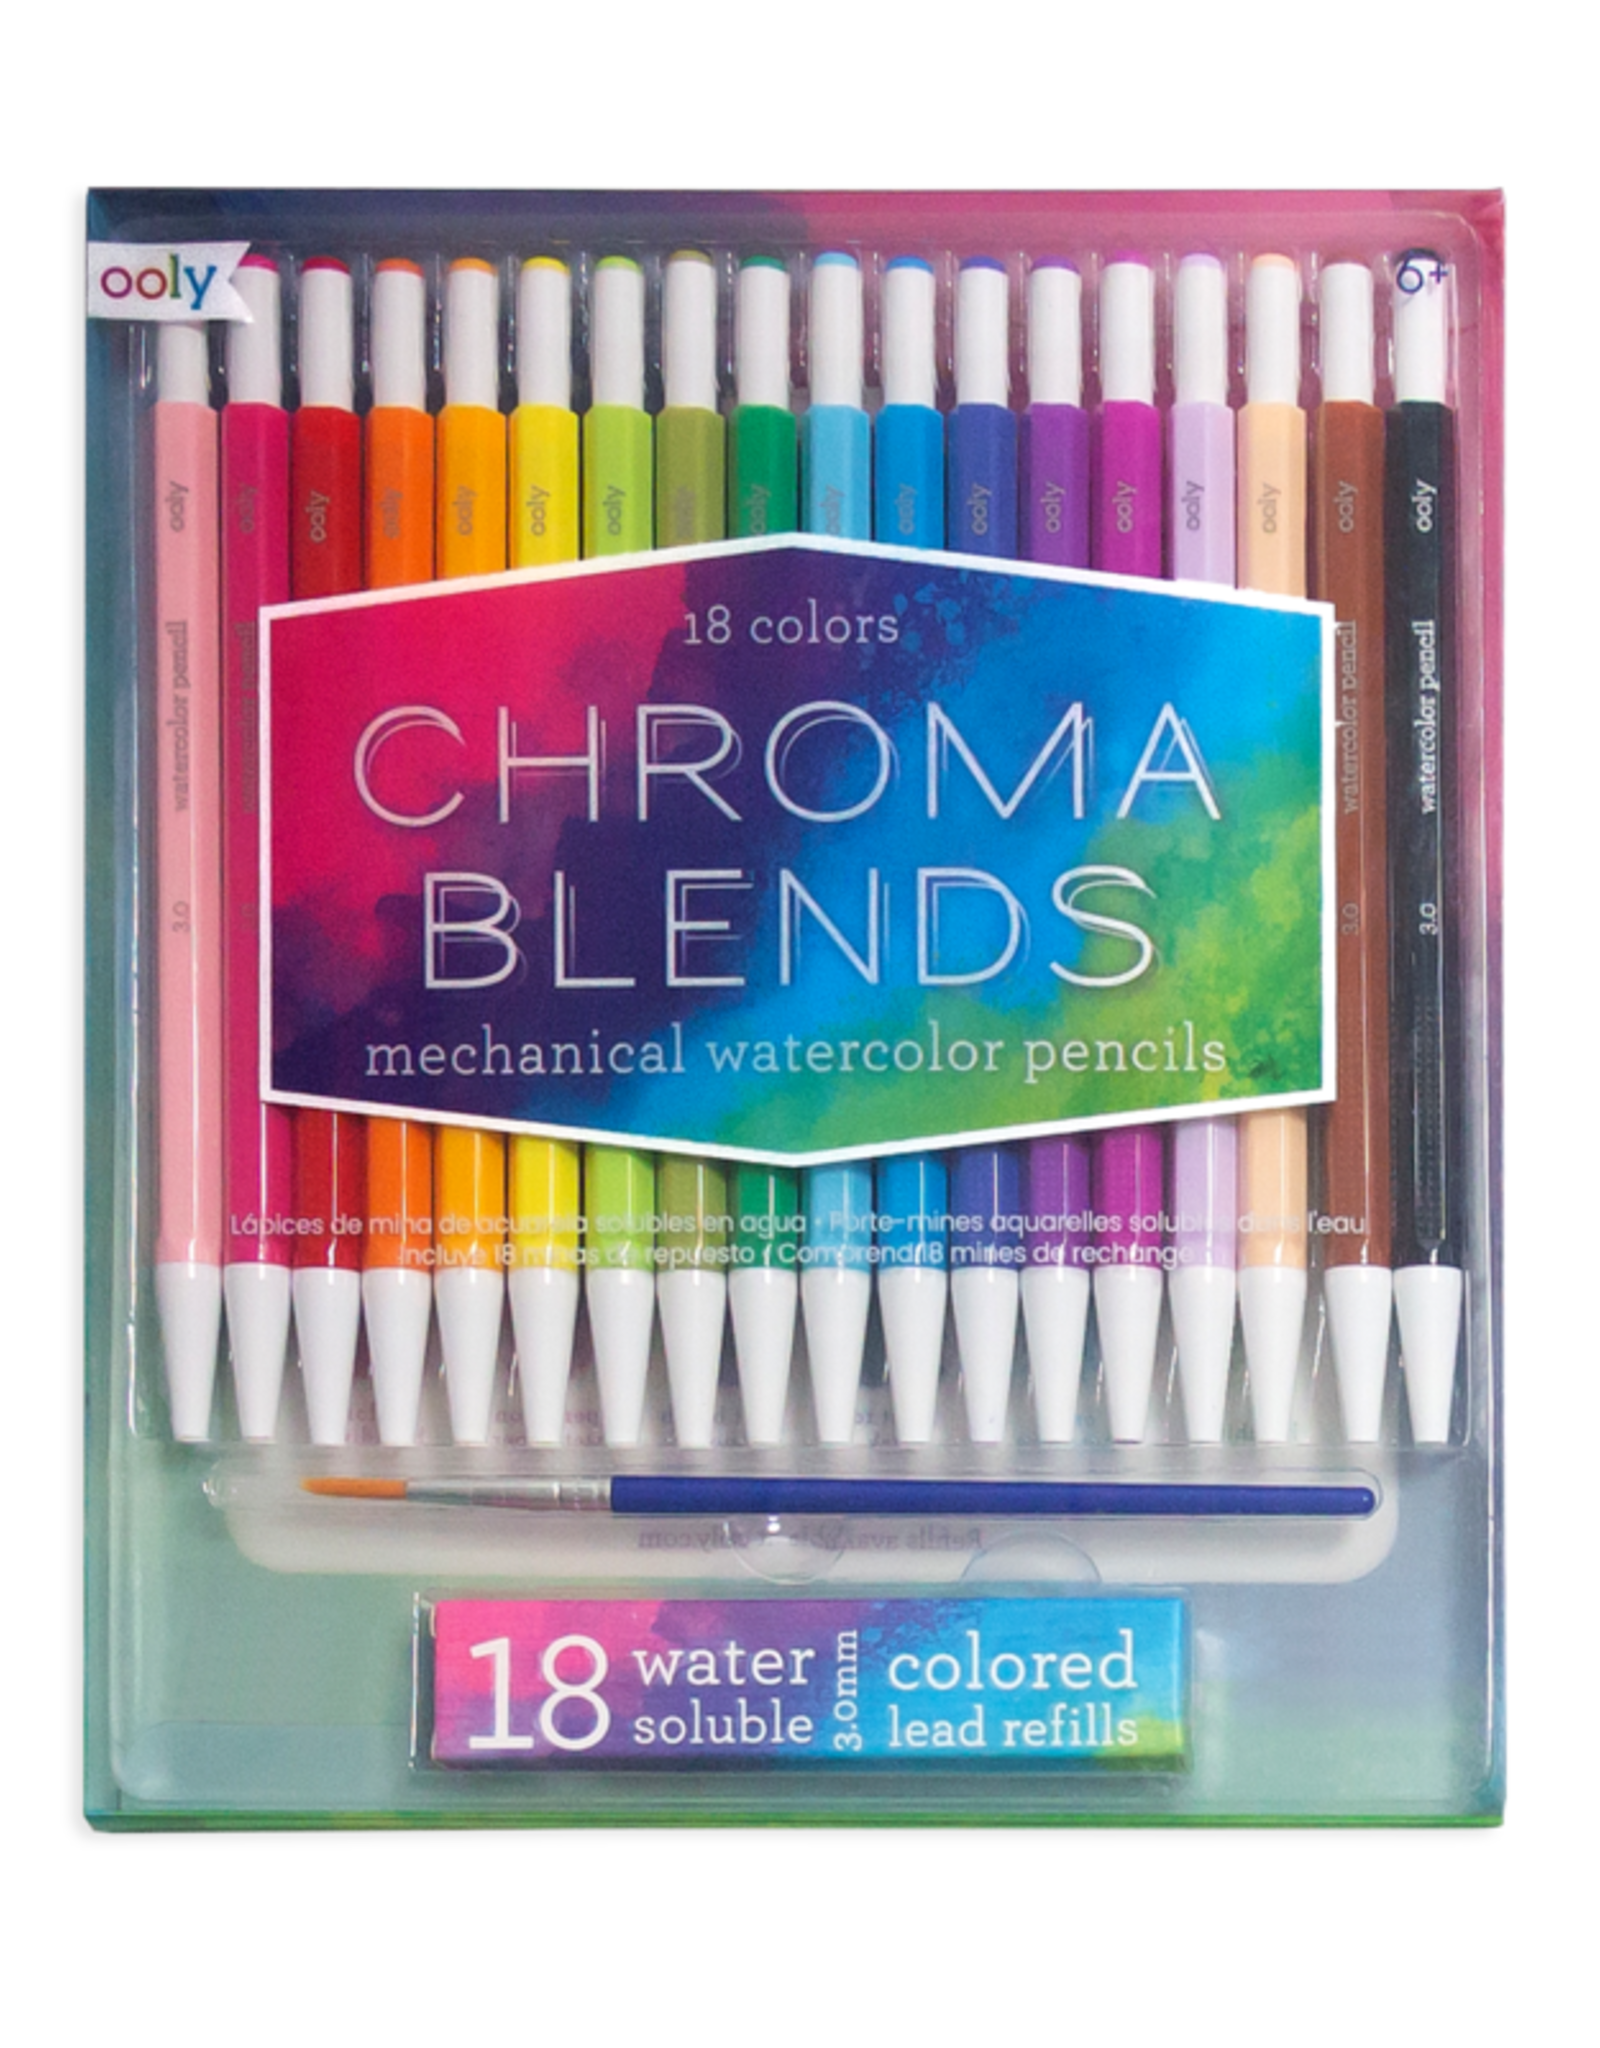 OOLY CHROMA BLENDS MECHANICAL WATERCOLOR PENCILS - SET OF 18 + REFILLS